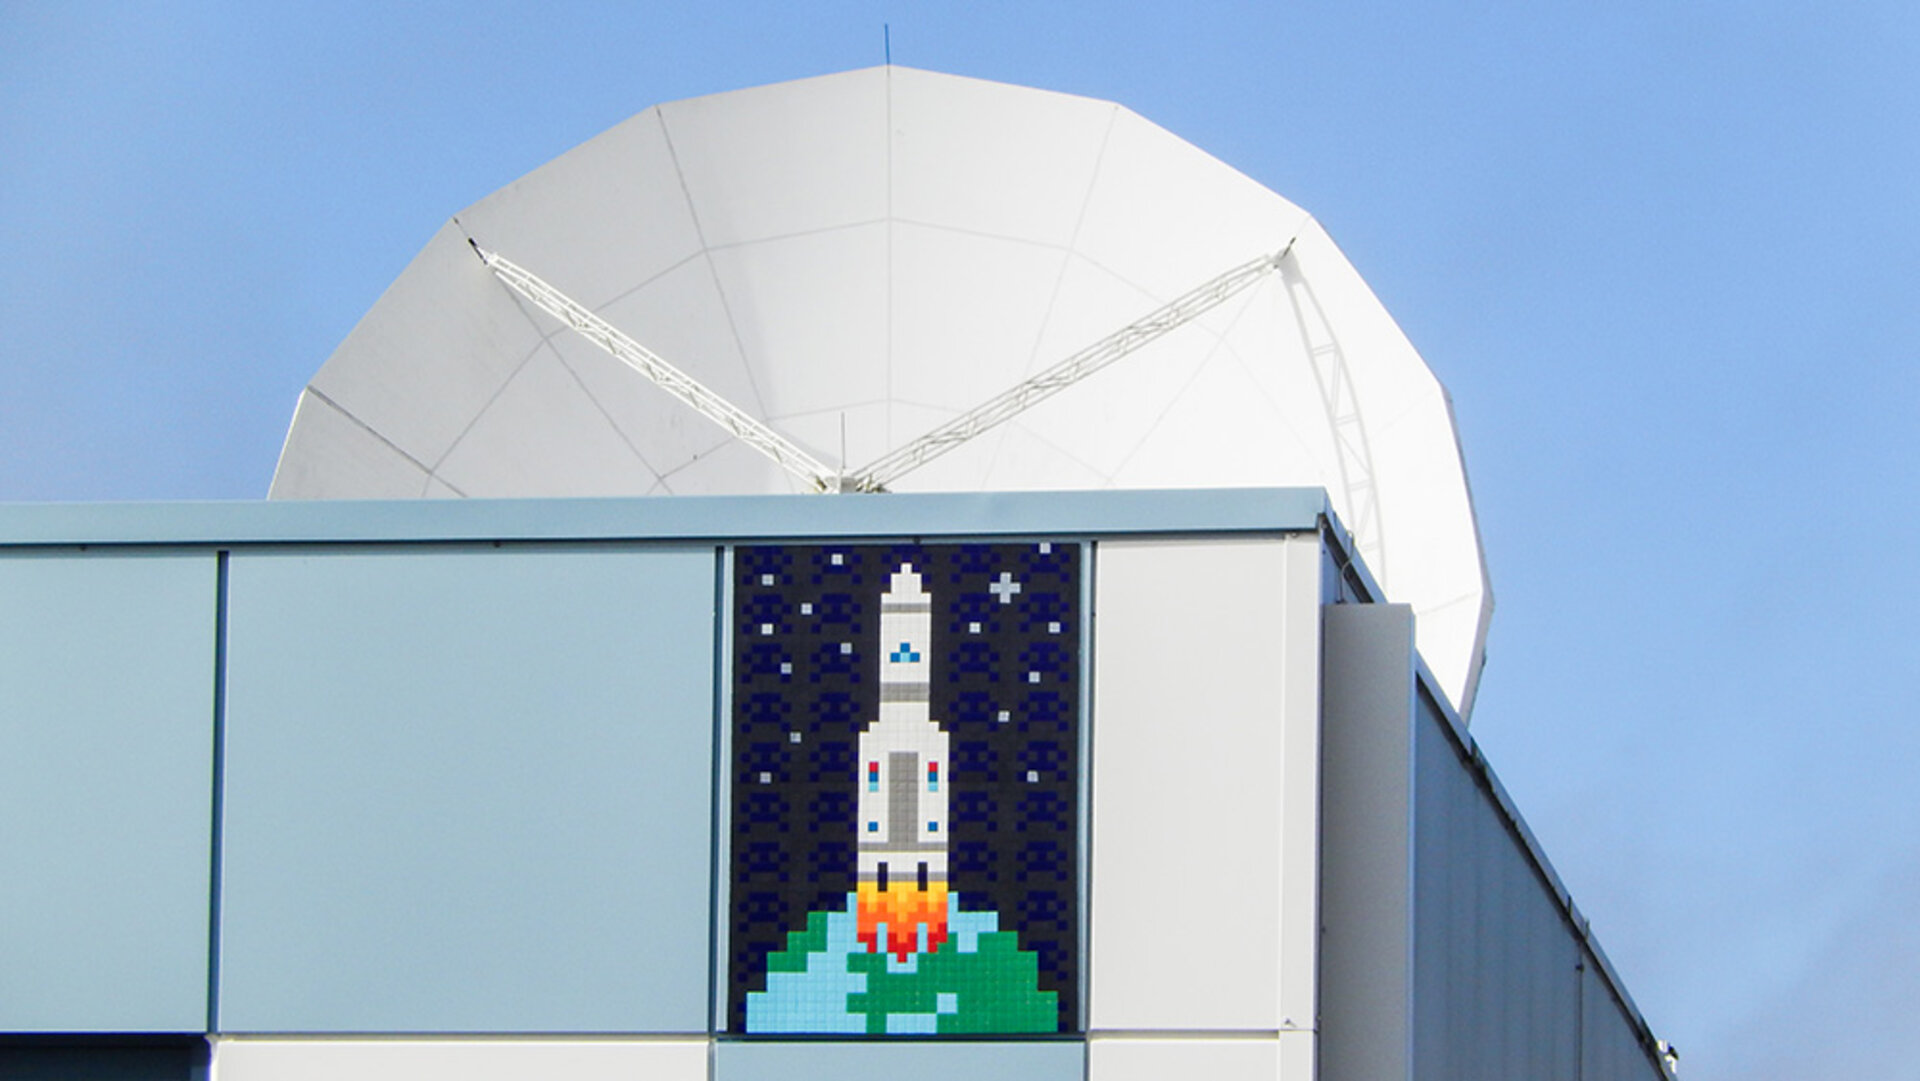 Mosaic art at ESA's Redu Centre in Belgium